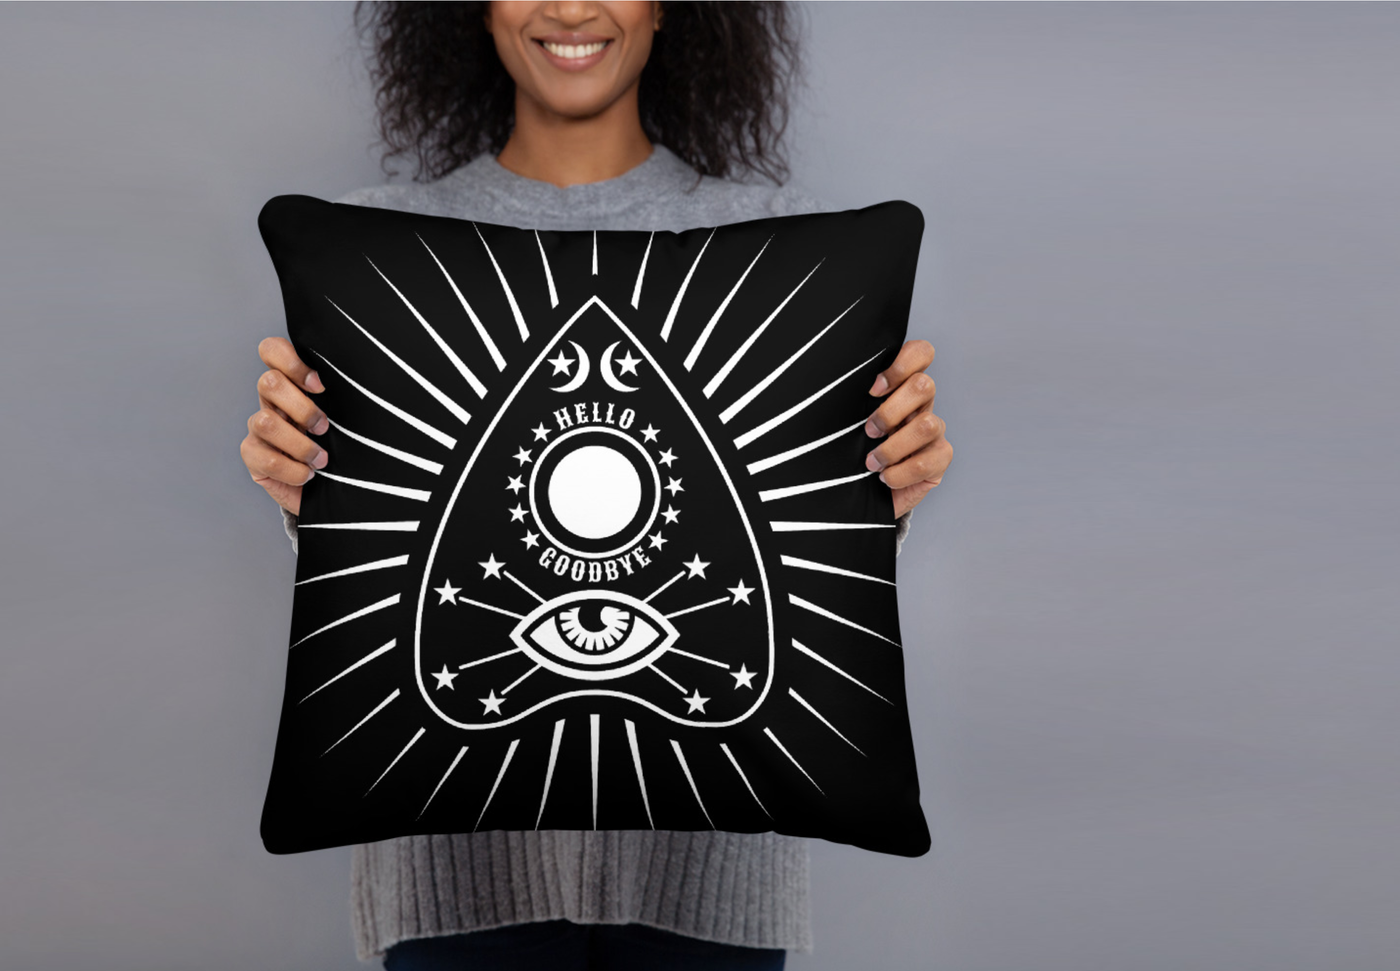 A smiling black woman holds a throw pillow in front of her. The pillow is black with a white communication board planchette design with lines radiating out from it. She stands against a grey wall.